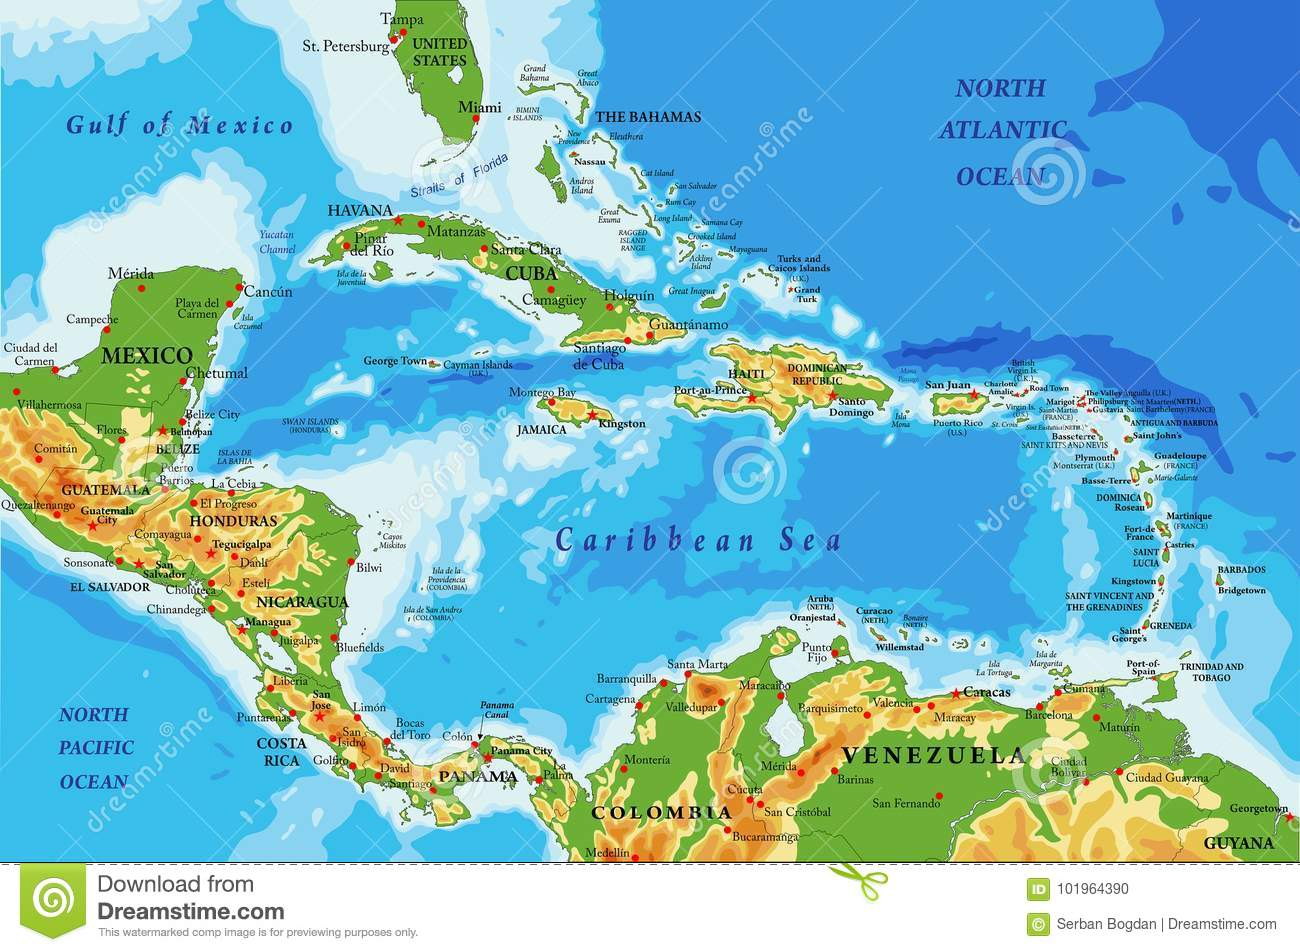 Map Of America And Caribbean.Central America And Caribbean Islands Physical Map Stock Vector